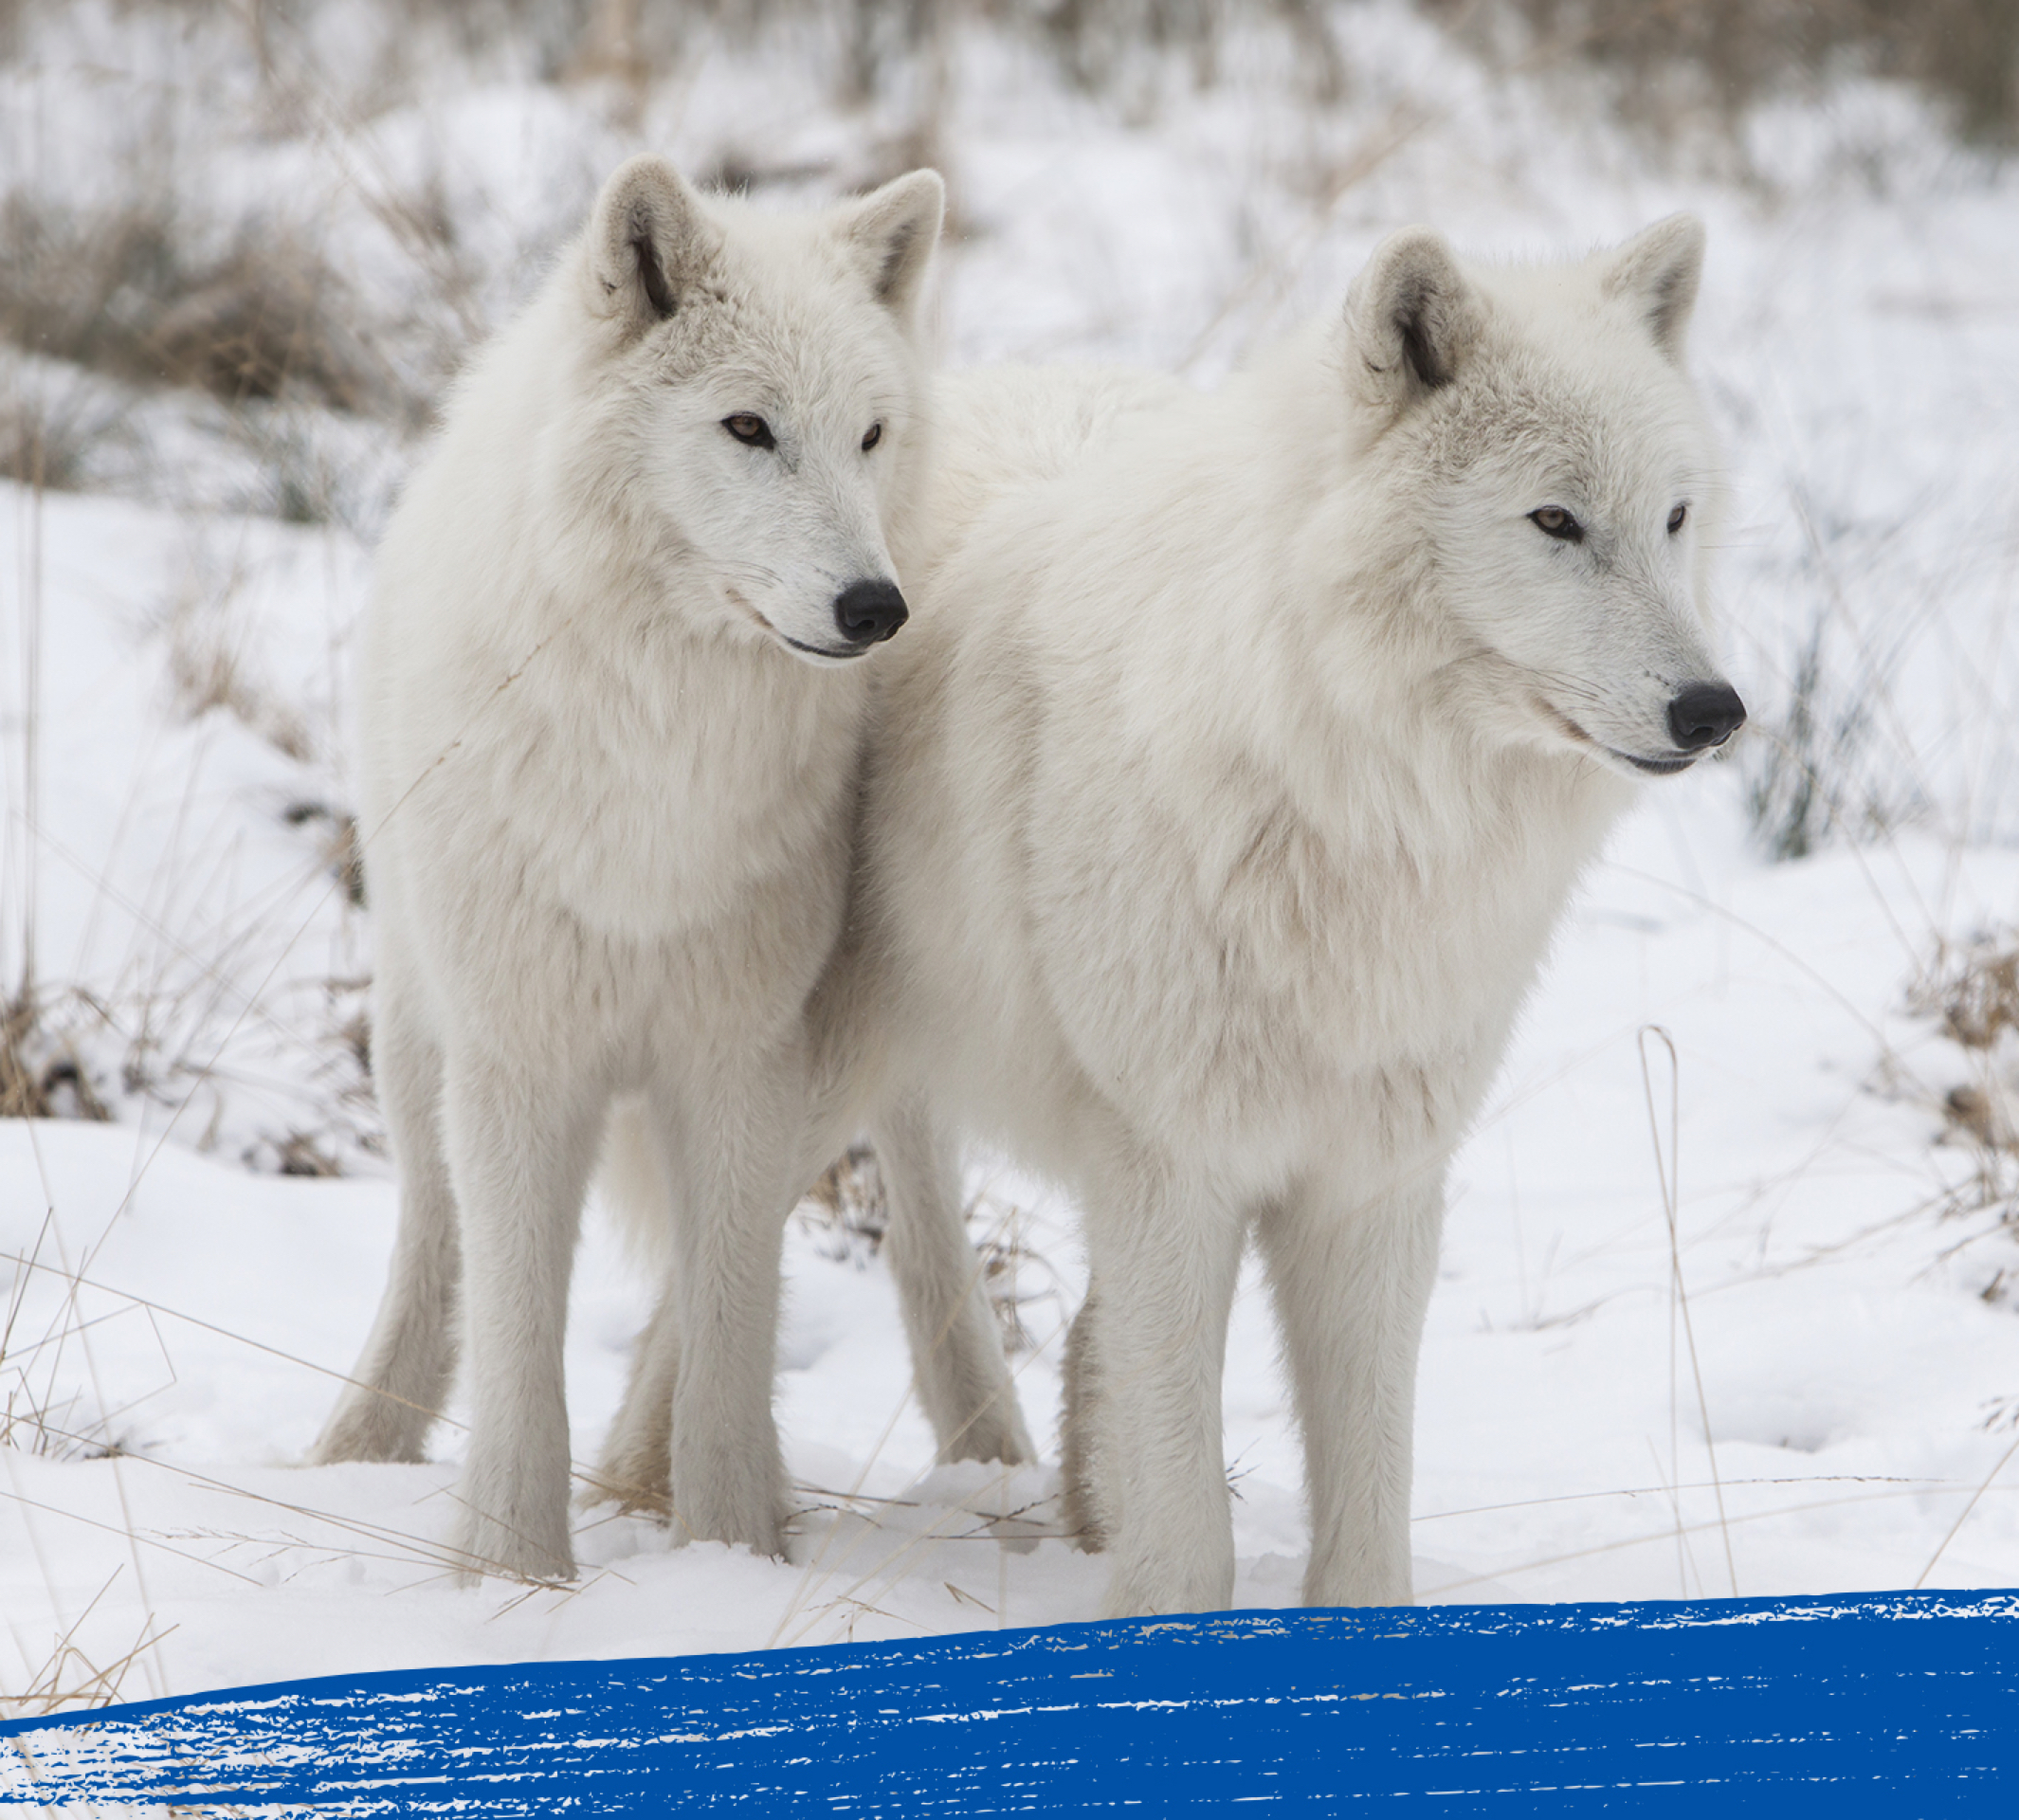 Two arctic wolves staring at something